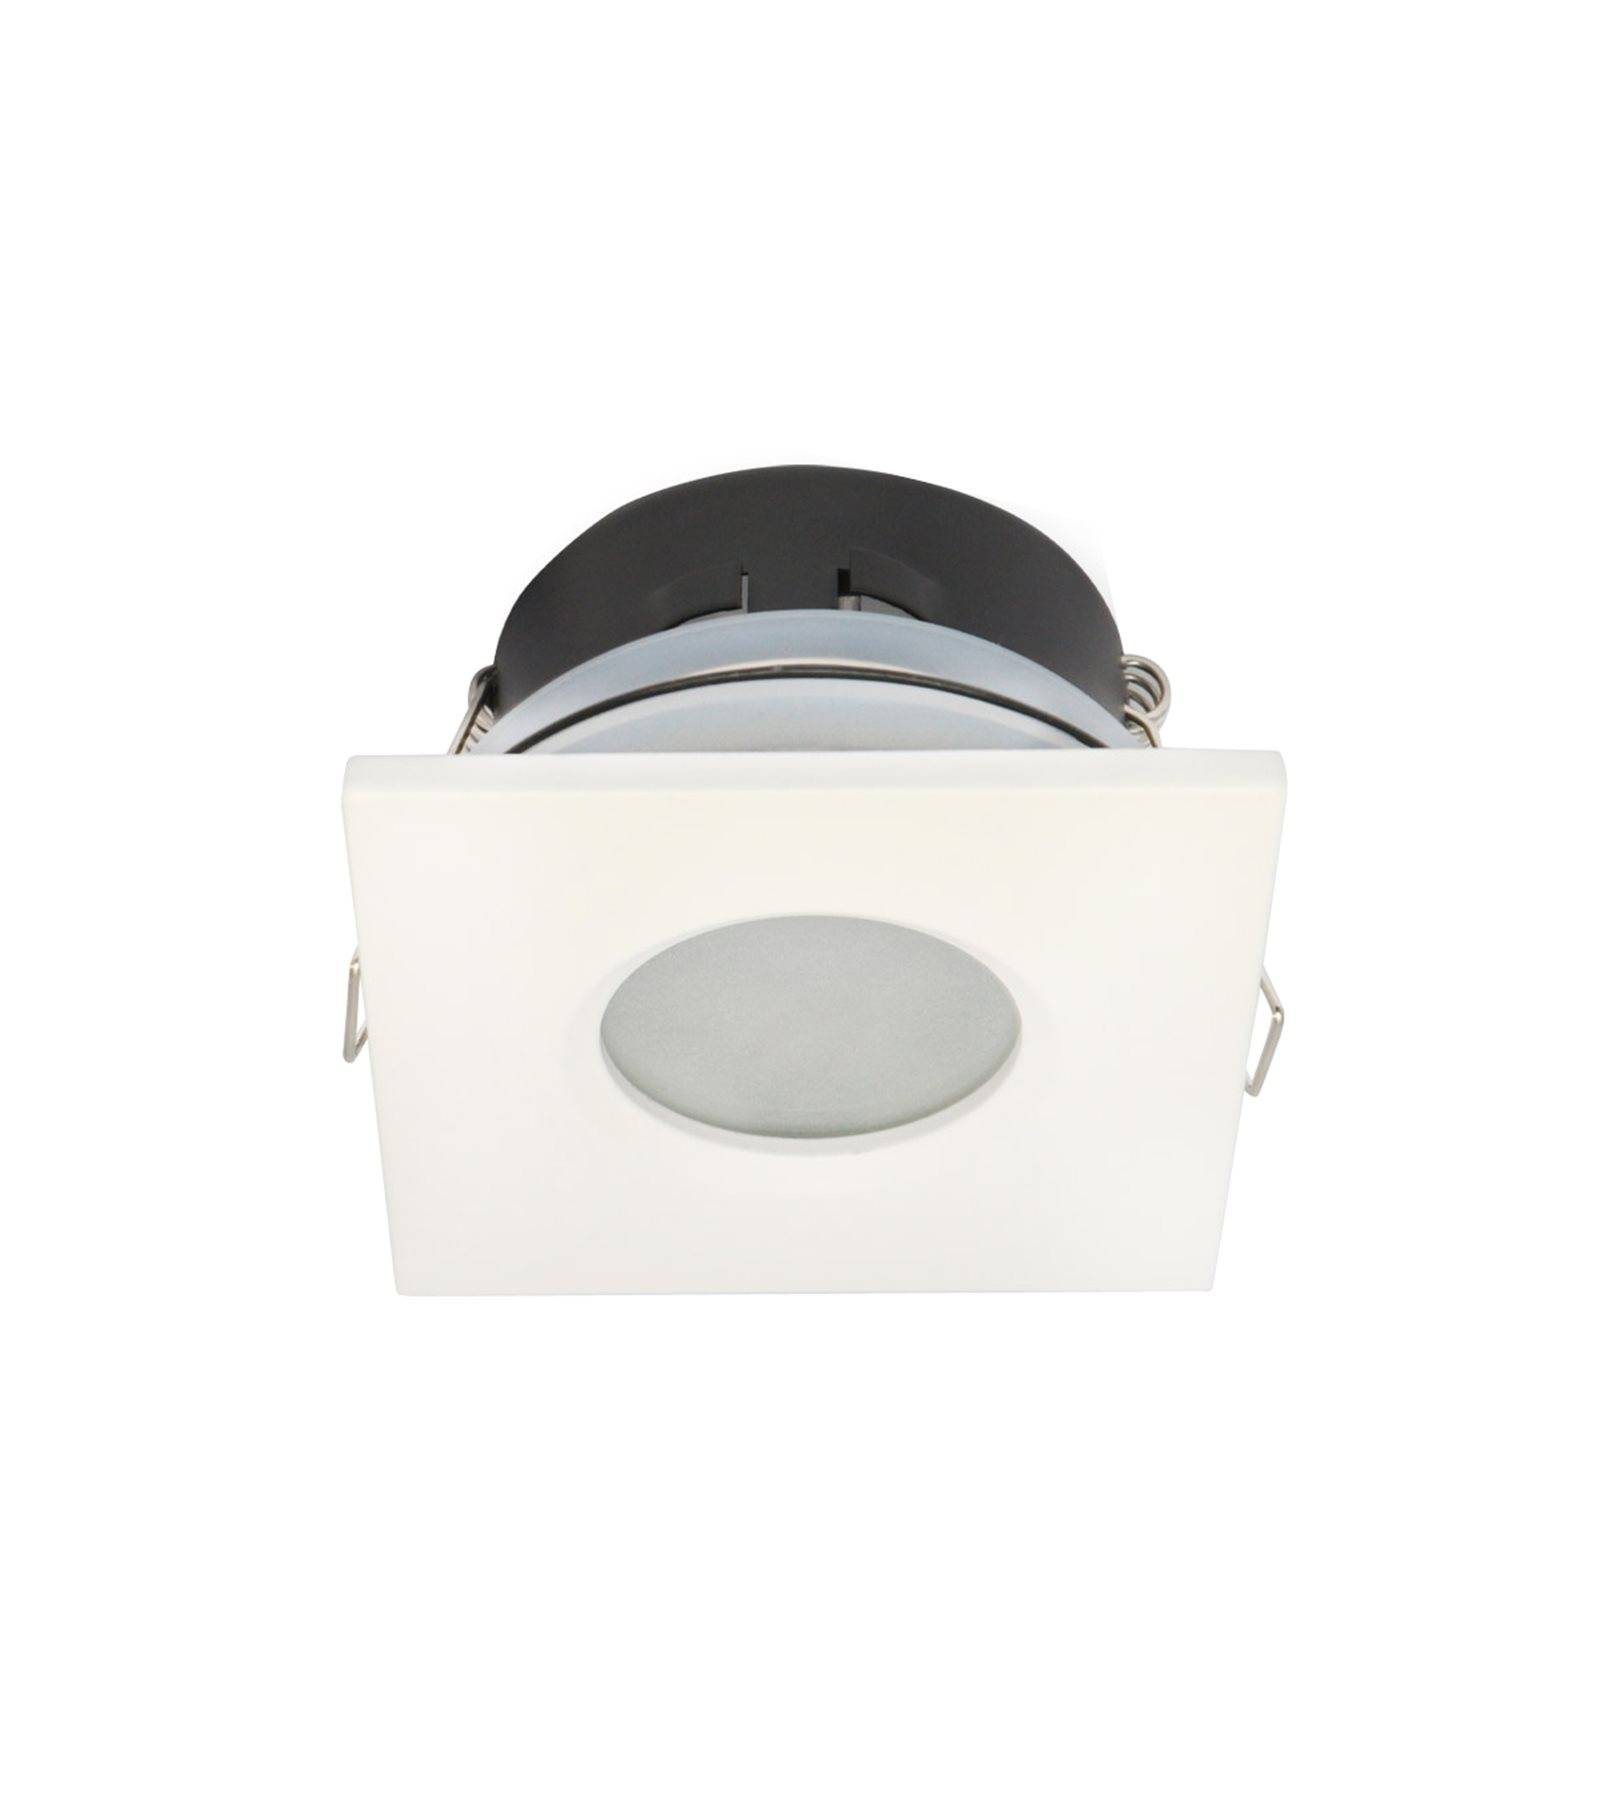 Spot encastrable salle de bain blanc carr gu5 3 mr16 ip65 for Spot led etanche salle de bain